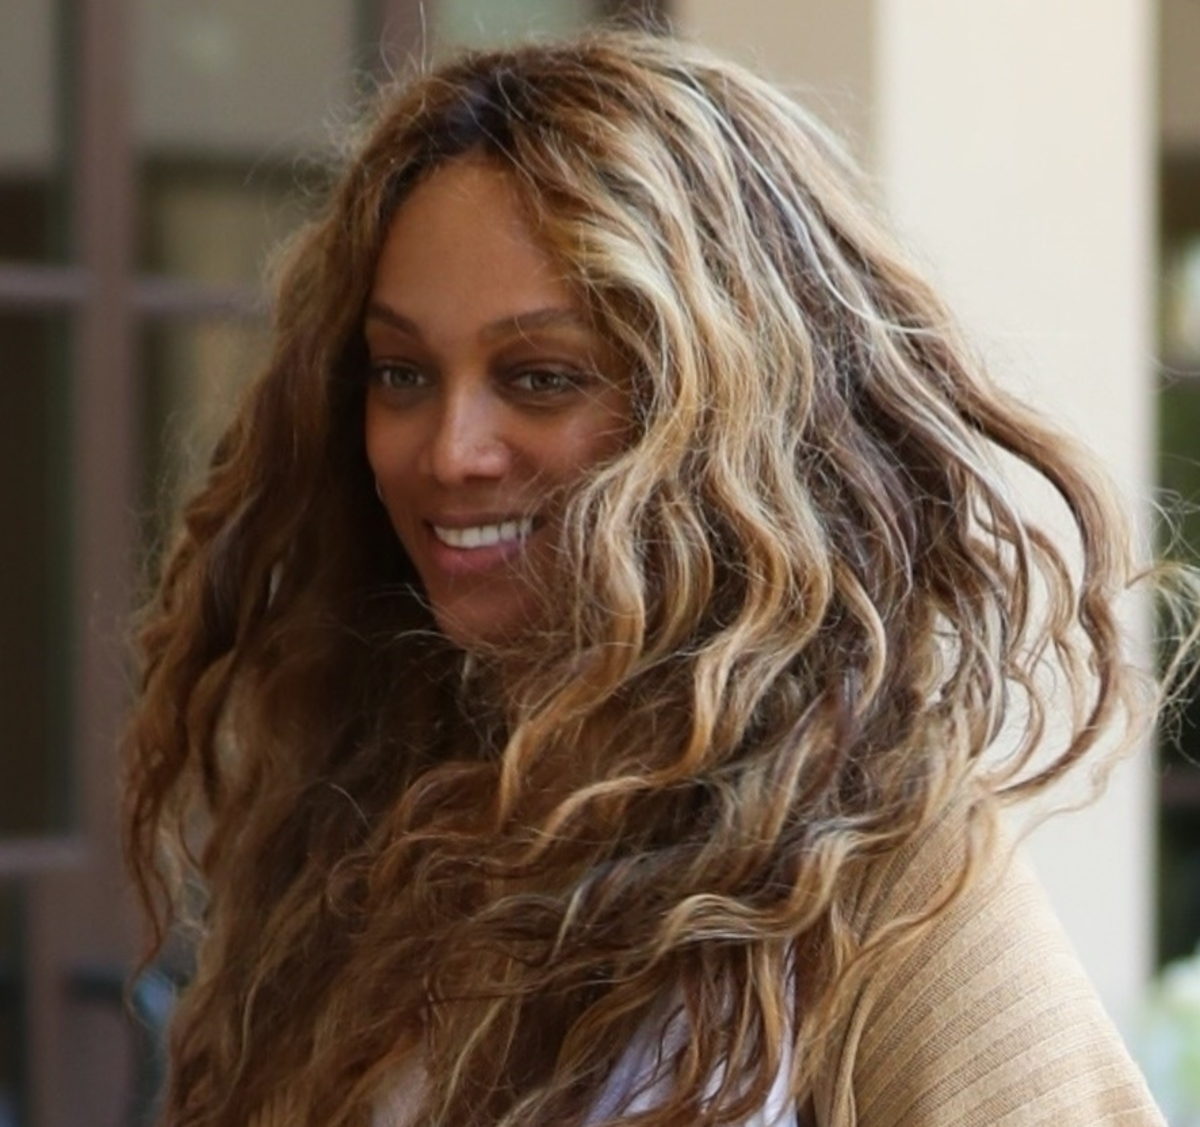 Tyra Banks Photo'd Out . .. With NO MAKEUP . . . And No